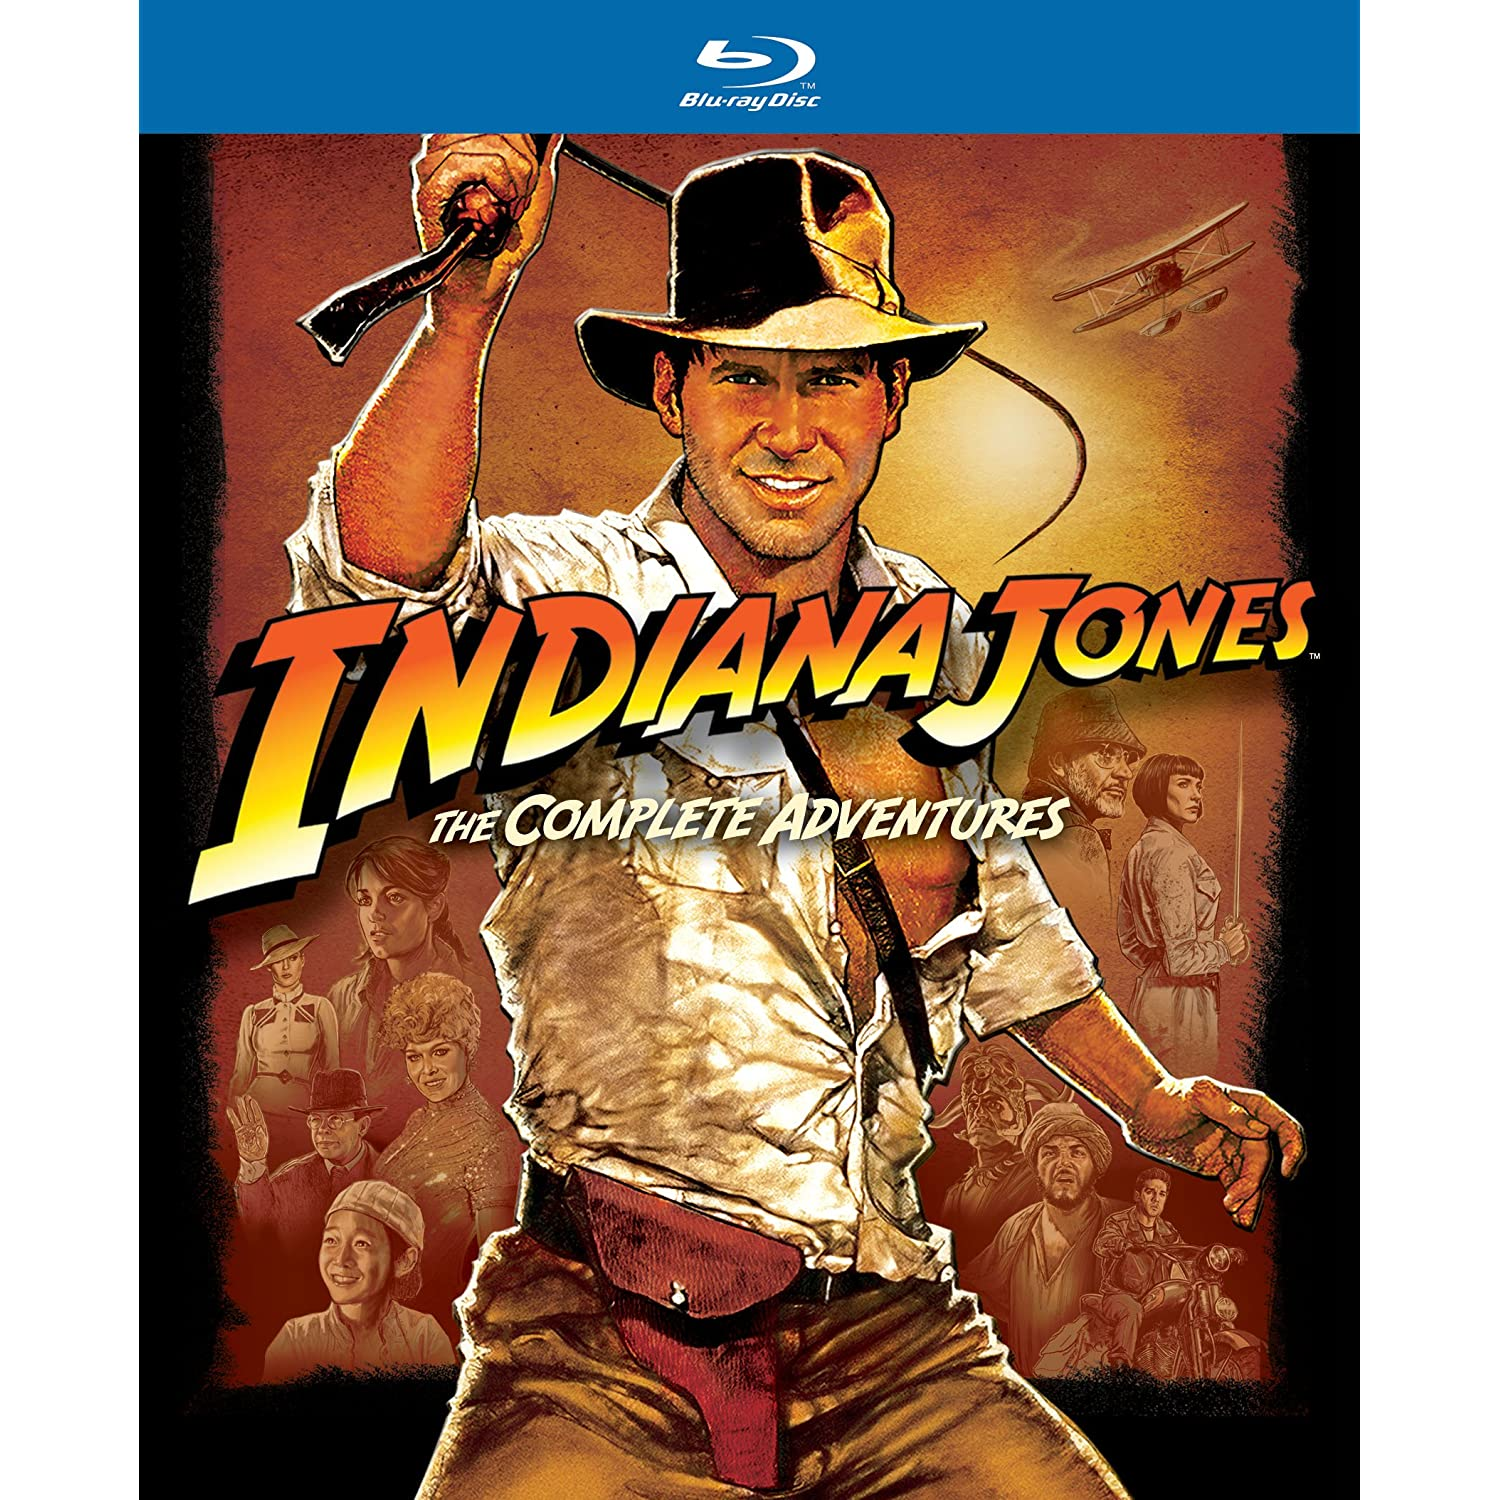 Indy Jones on Blu-Ray